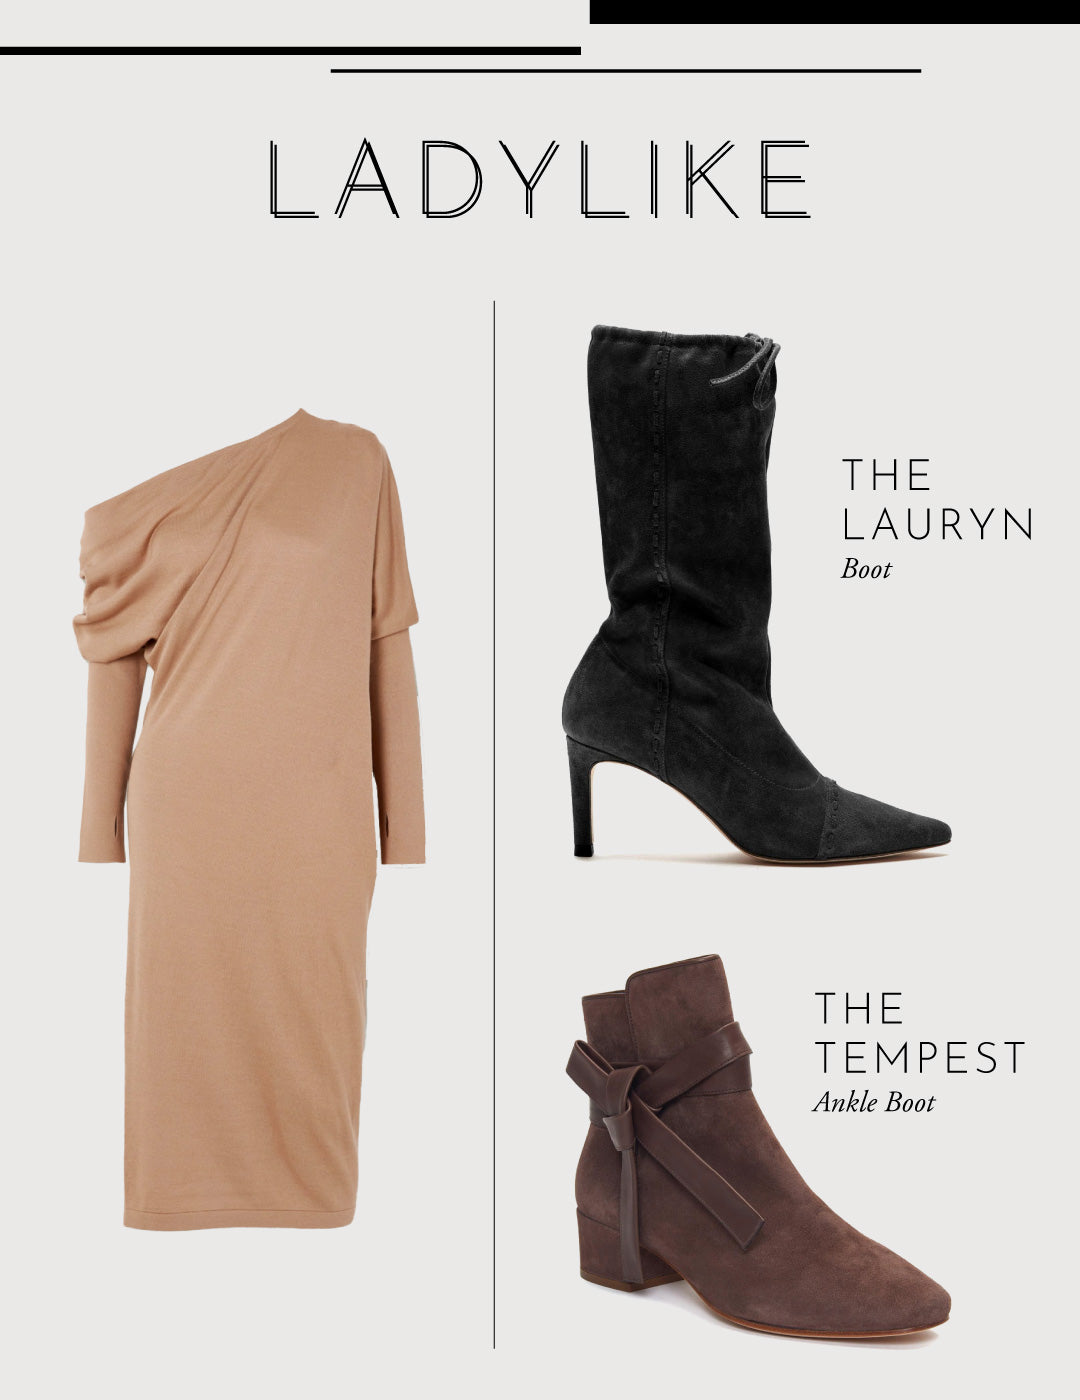 fall boots style guide- etienne aigner - ladylike